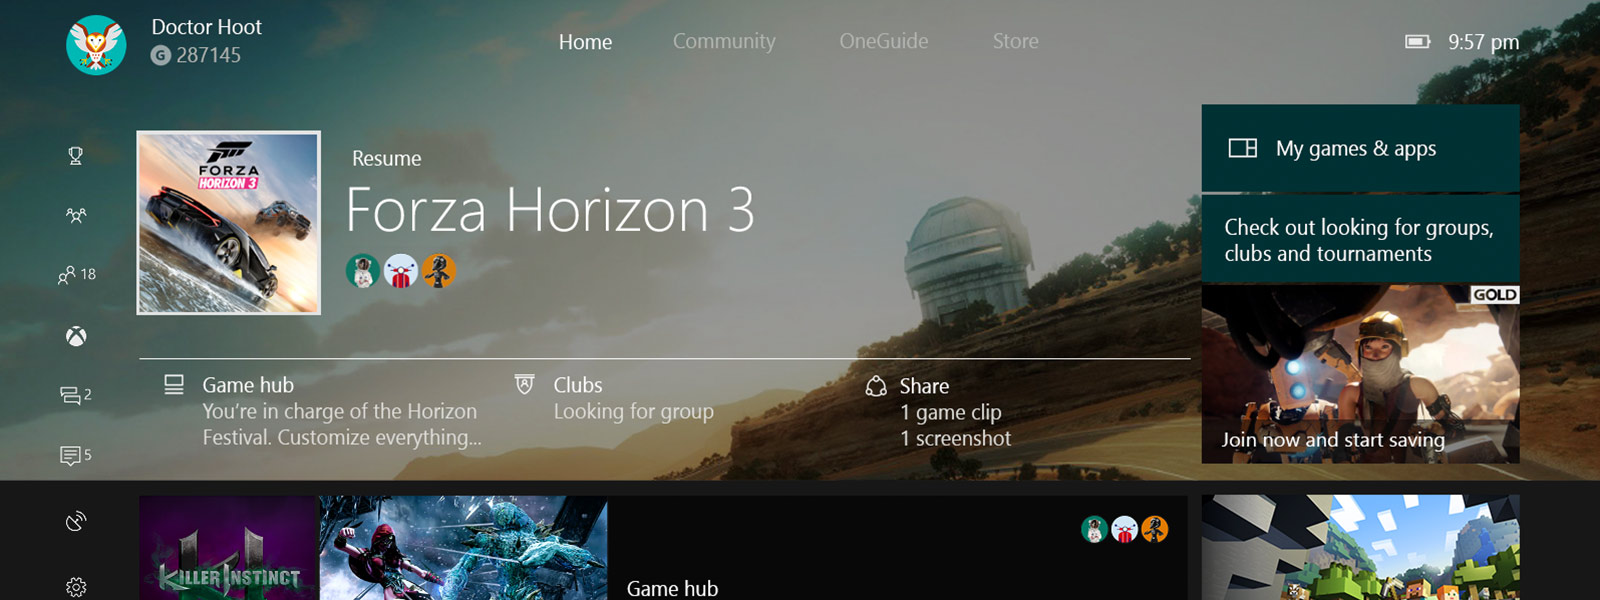 Xbox One Dashboard - Start